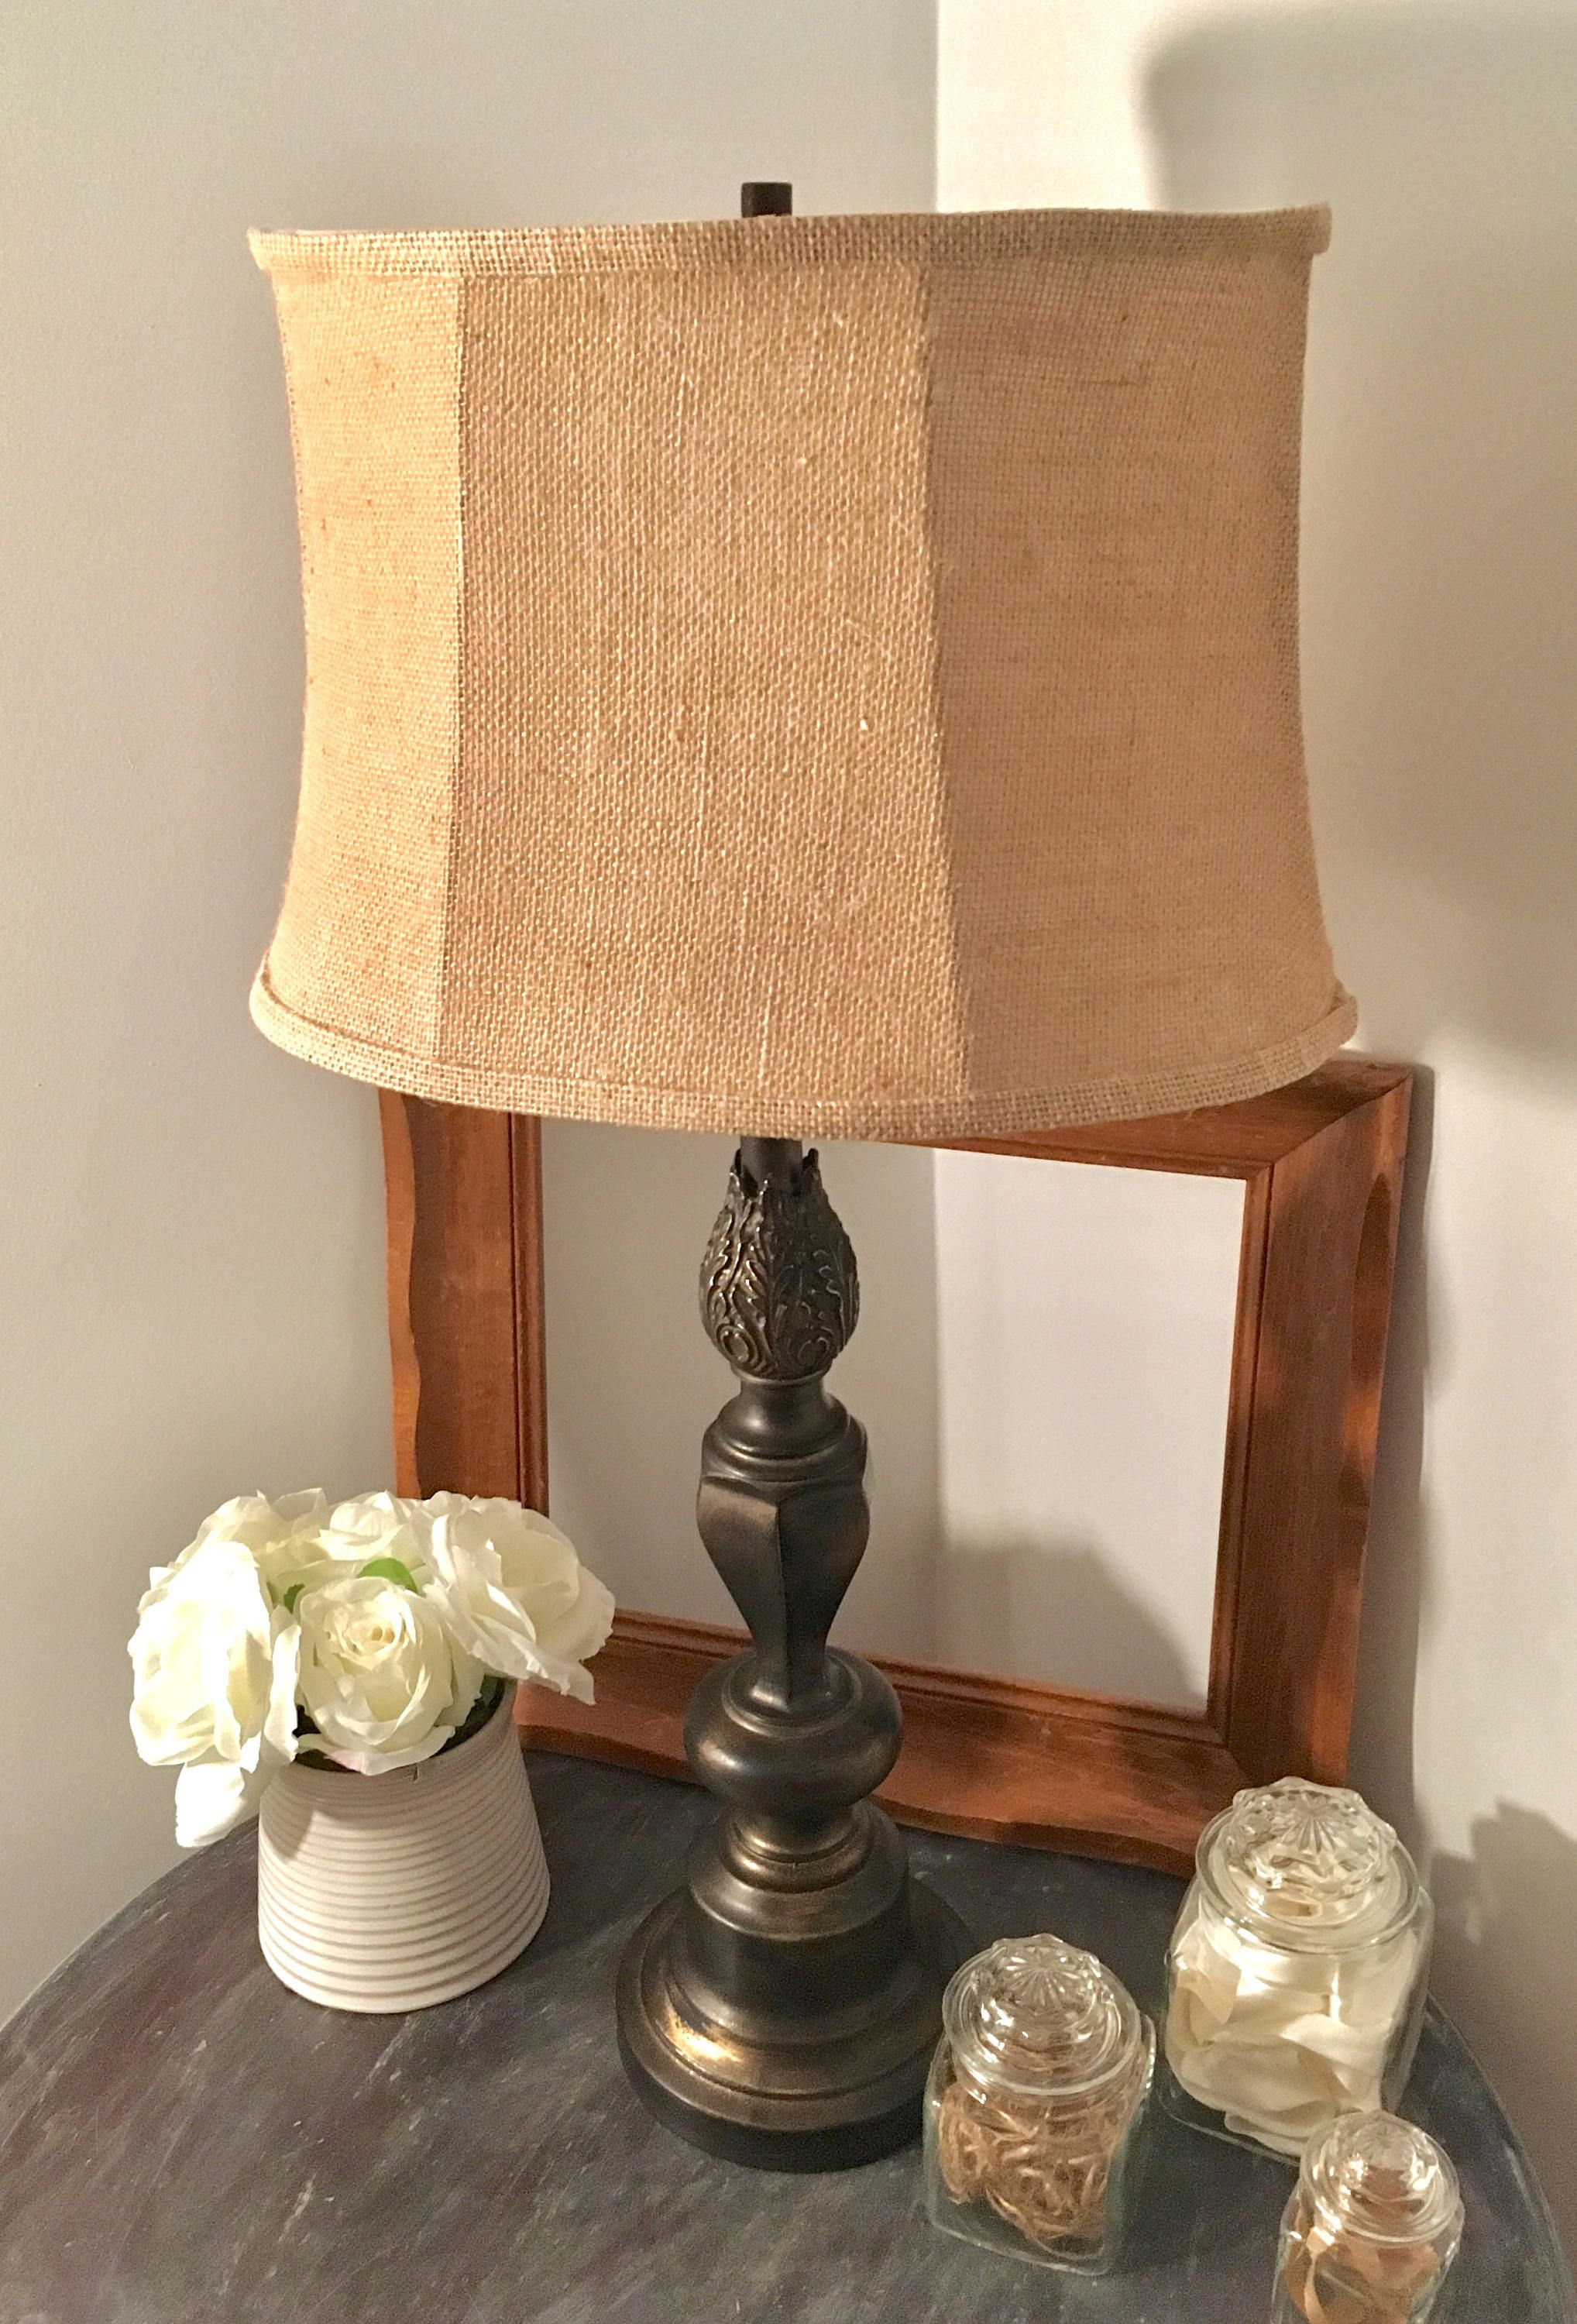 country lighting fixtures for home. Industrial Farmhouse Table Lamp, French Country Cottage Home Lighting, Lights, Rustic Lamps Lighting Fixtures For